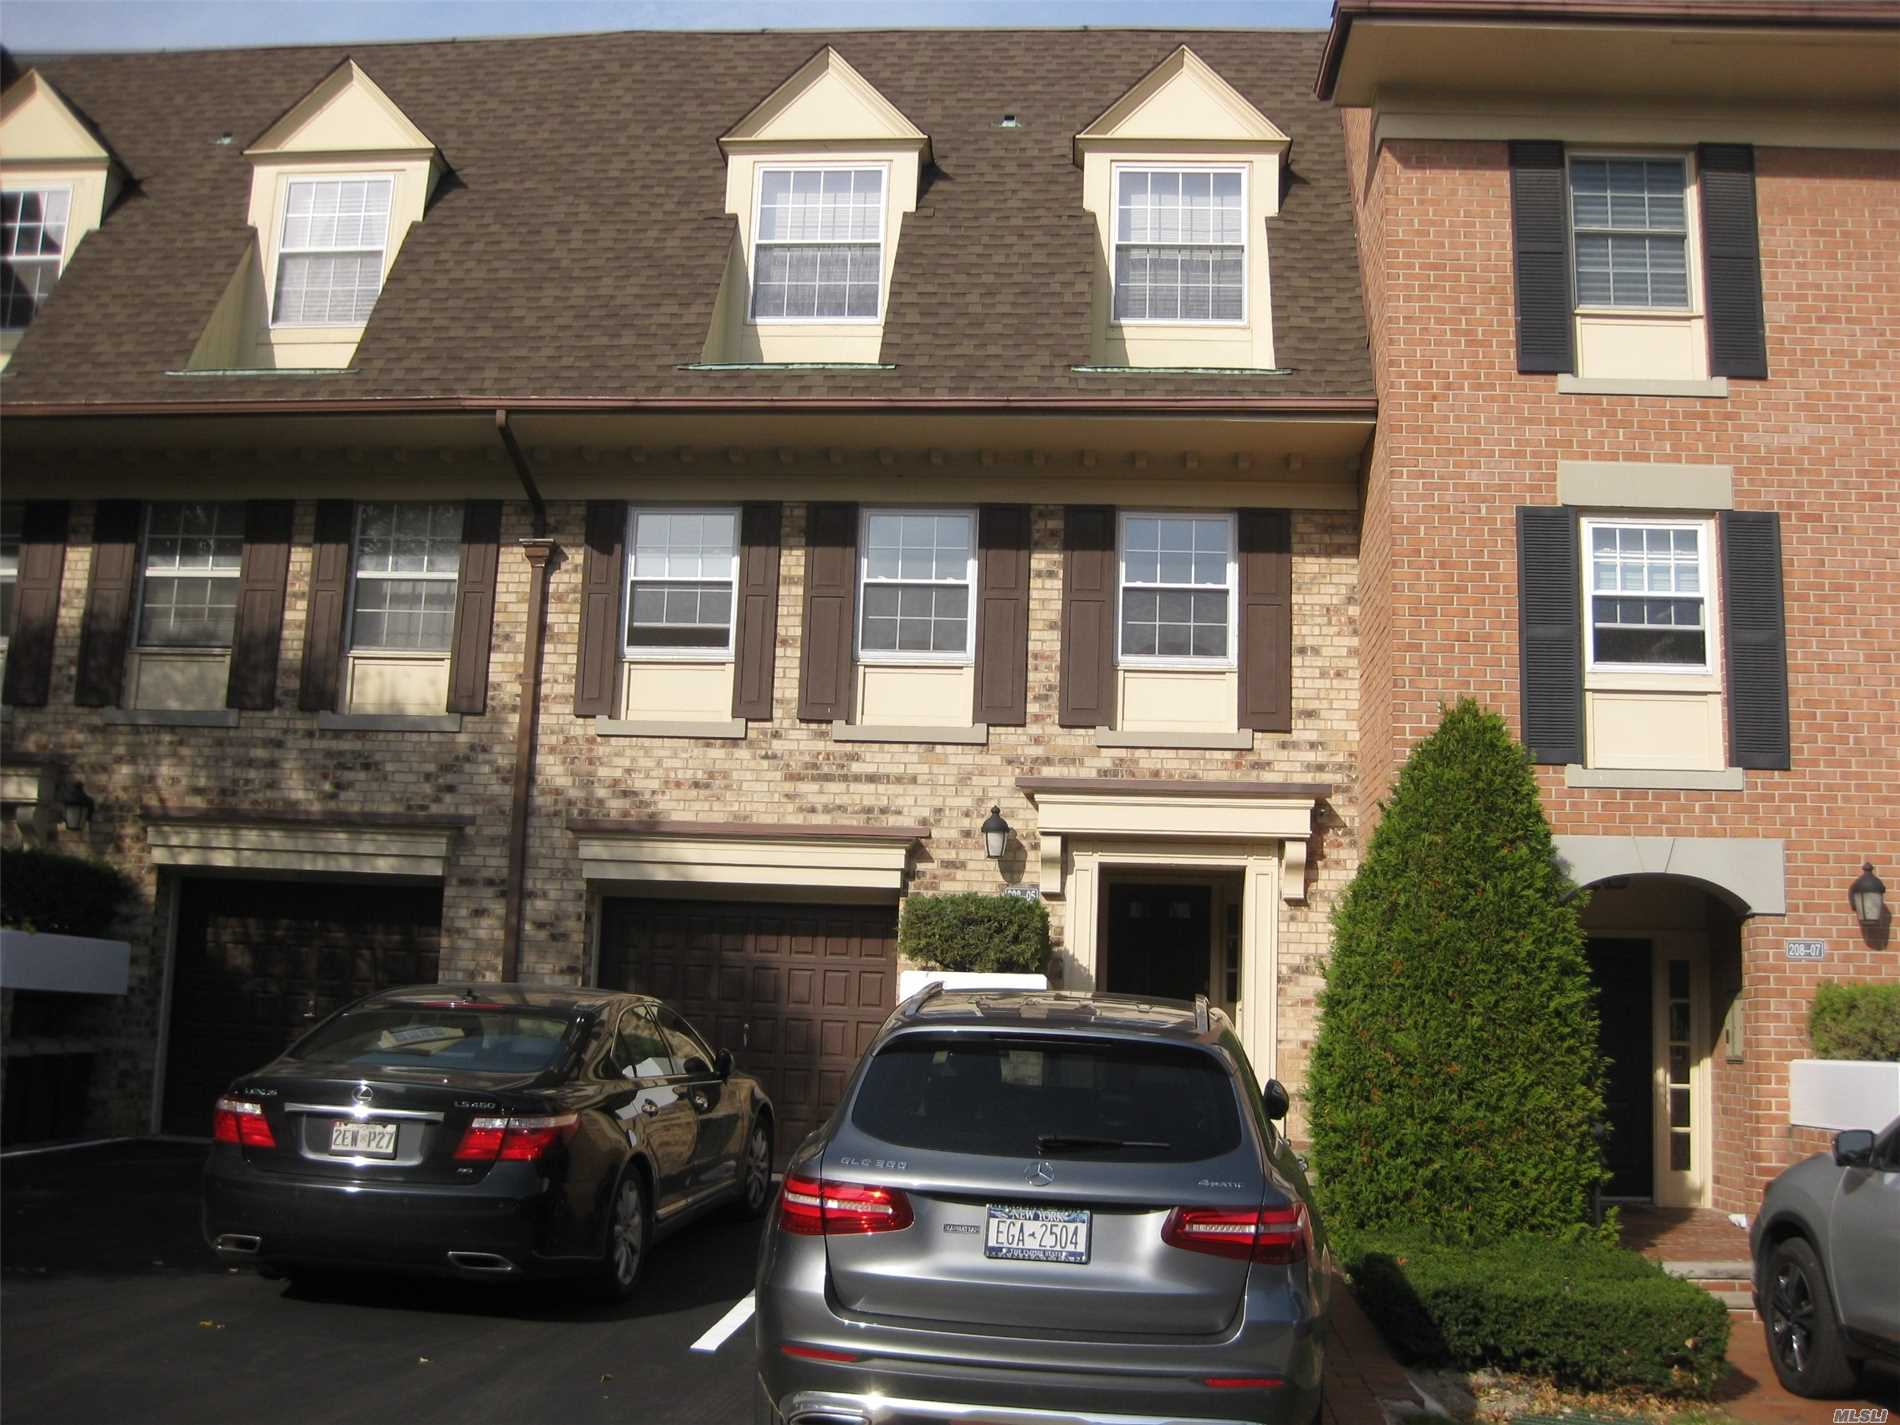 Prime Location, Totally Redone New Kit $ Bath, Finished Basement, Very Nice Garden View, Club House, In-Door, Out Door Pool. Tennis Court , Gated Community.